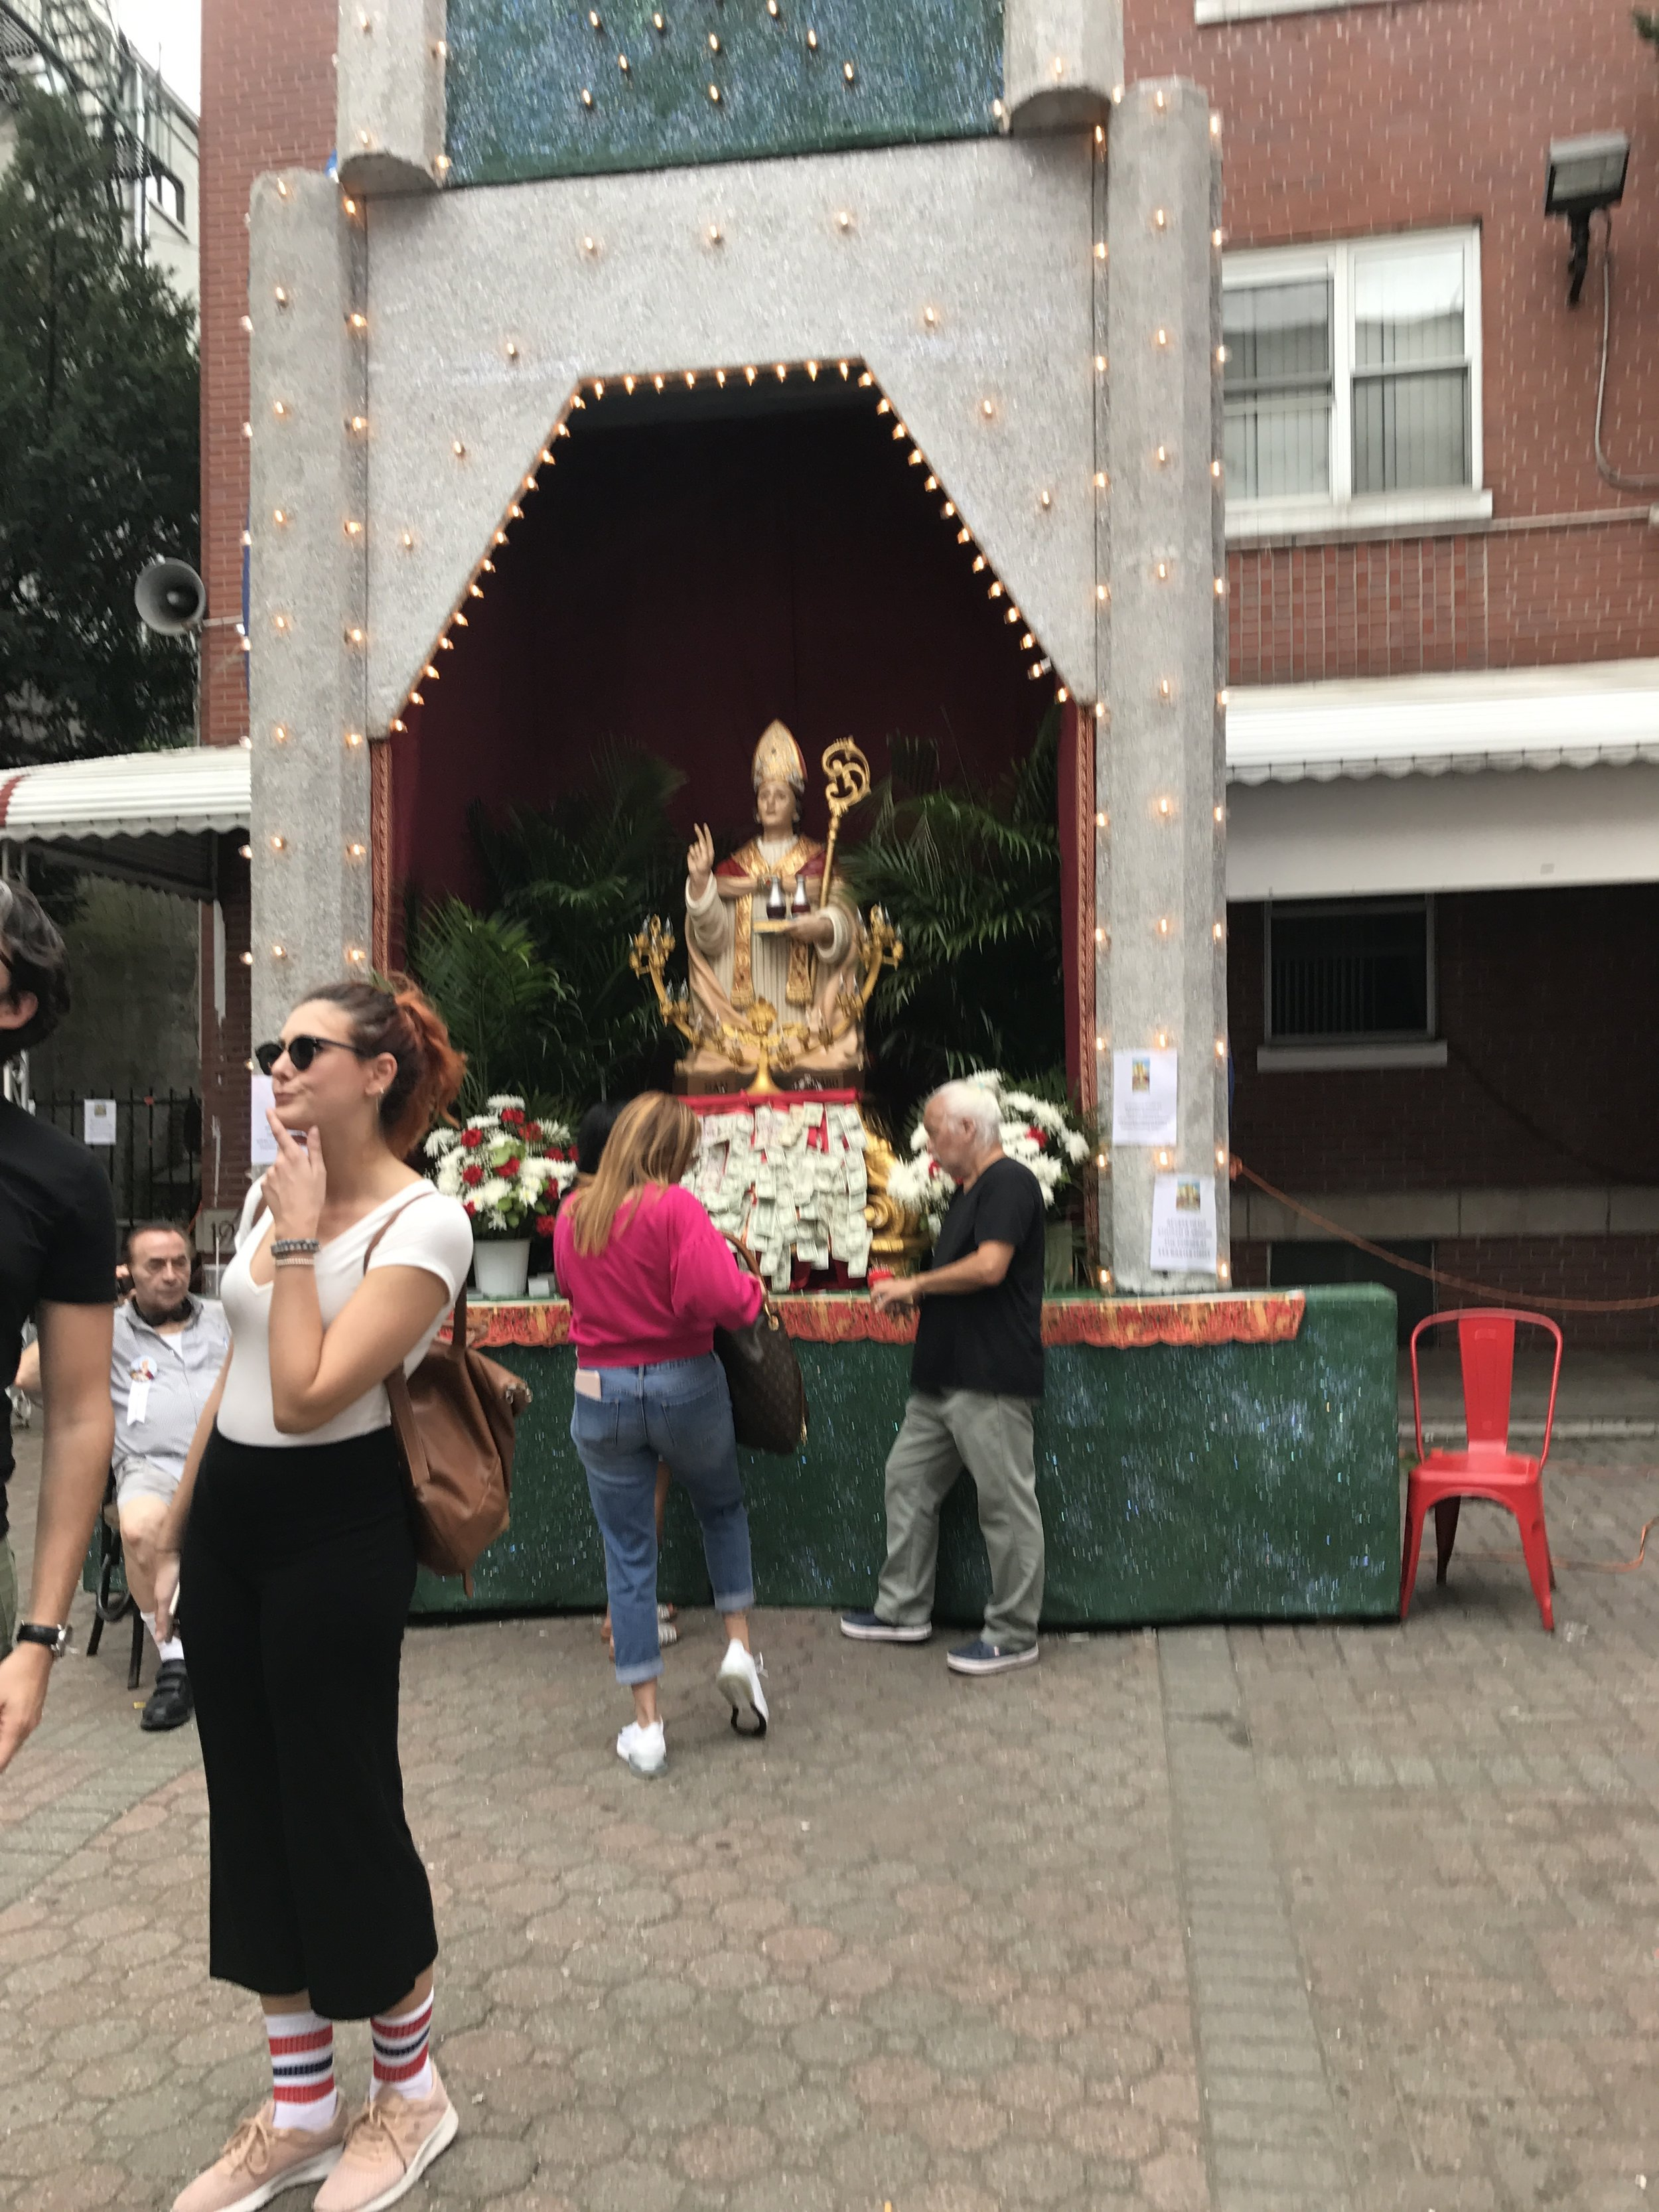 San Gennaro himself with offerings of money